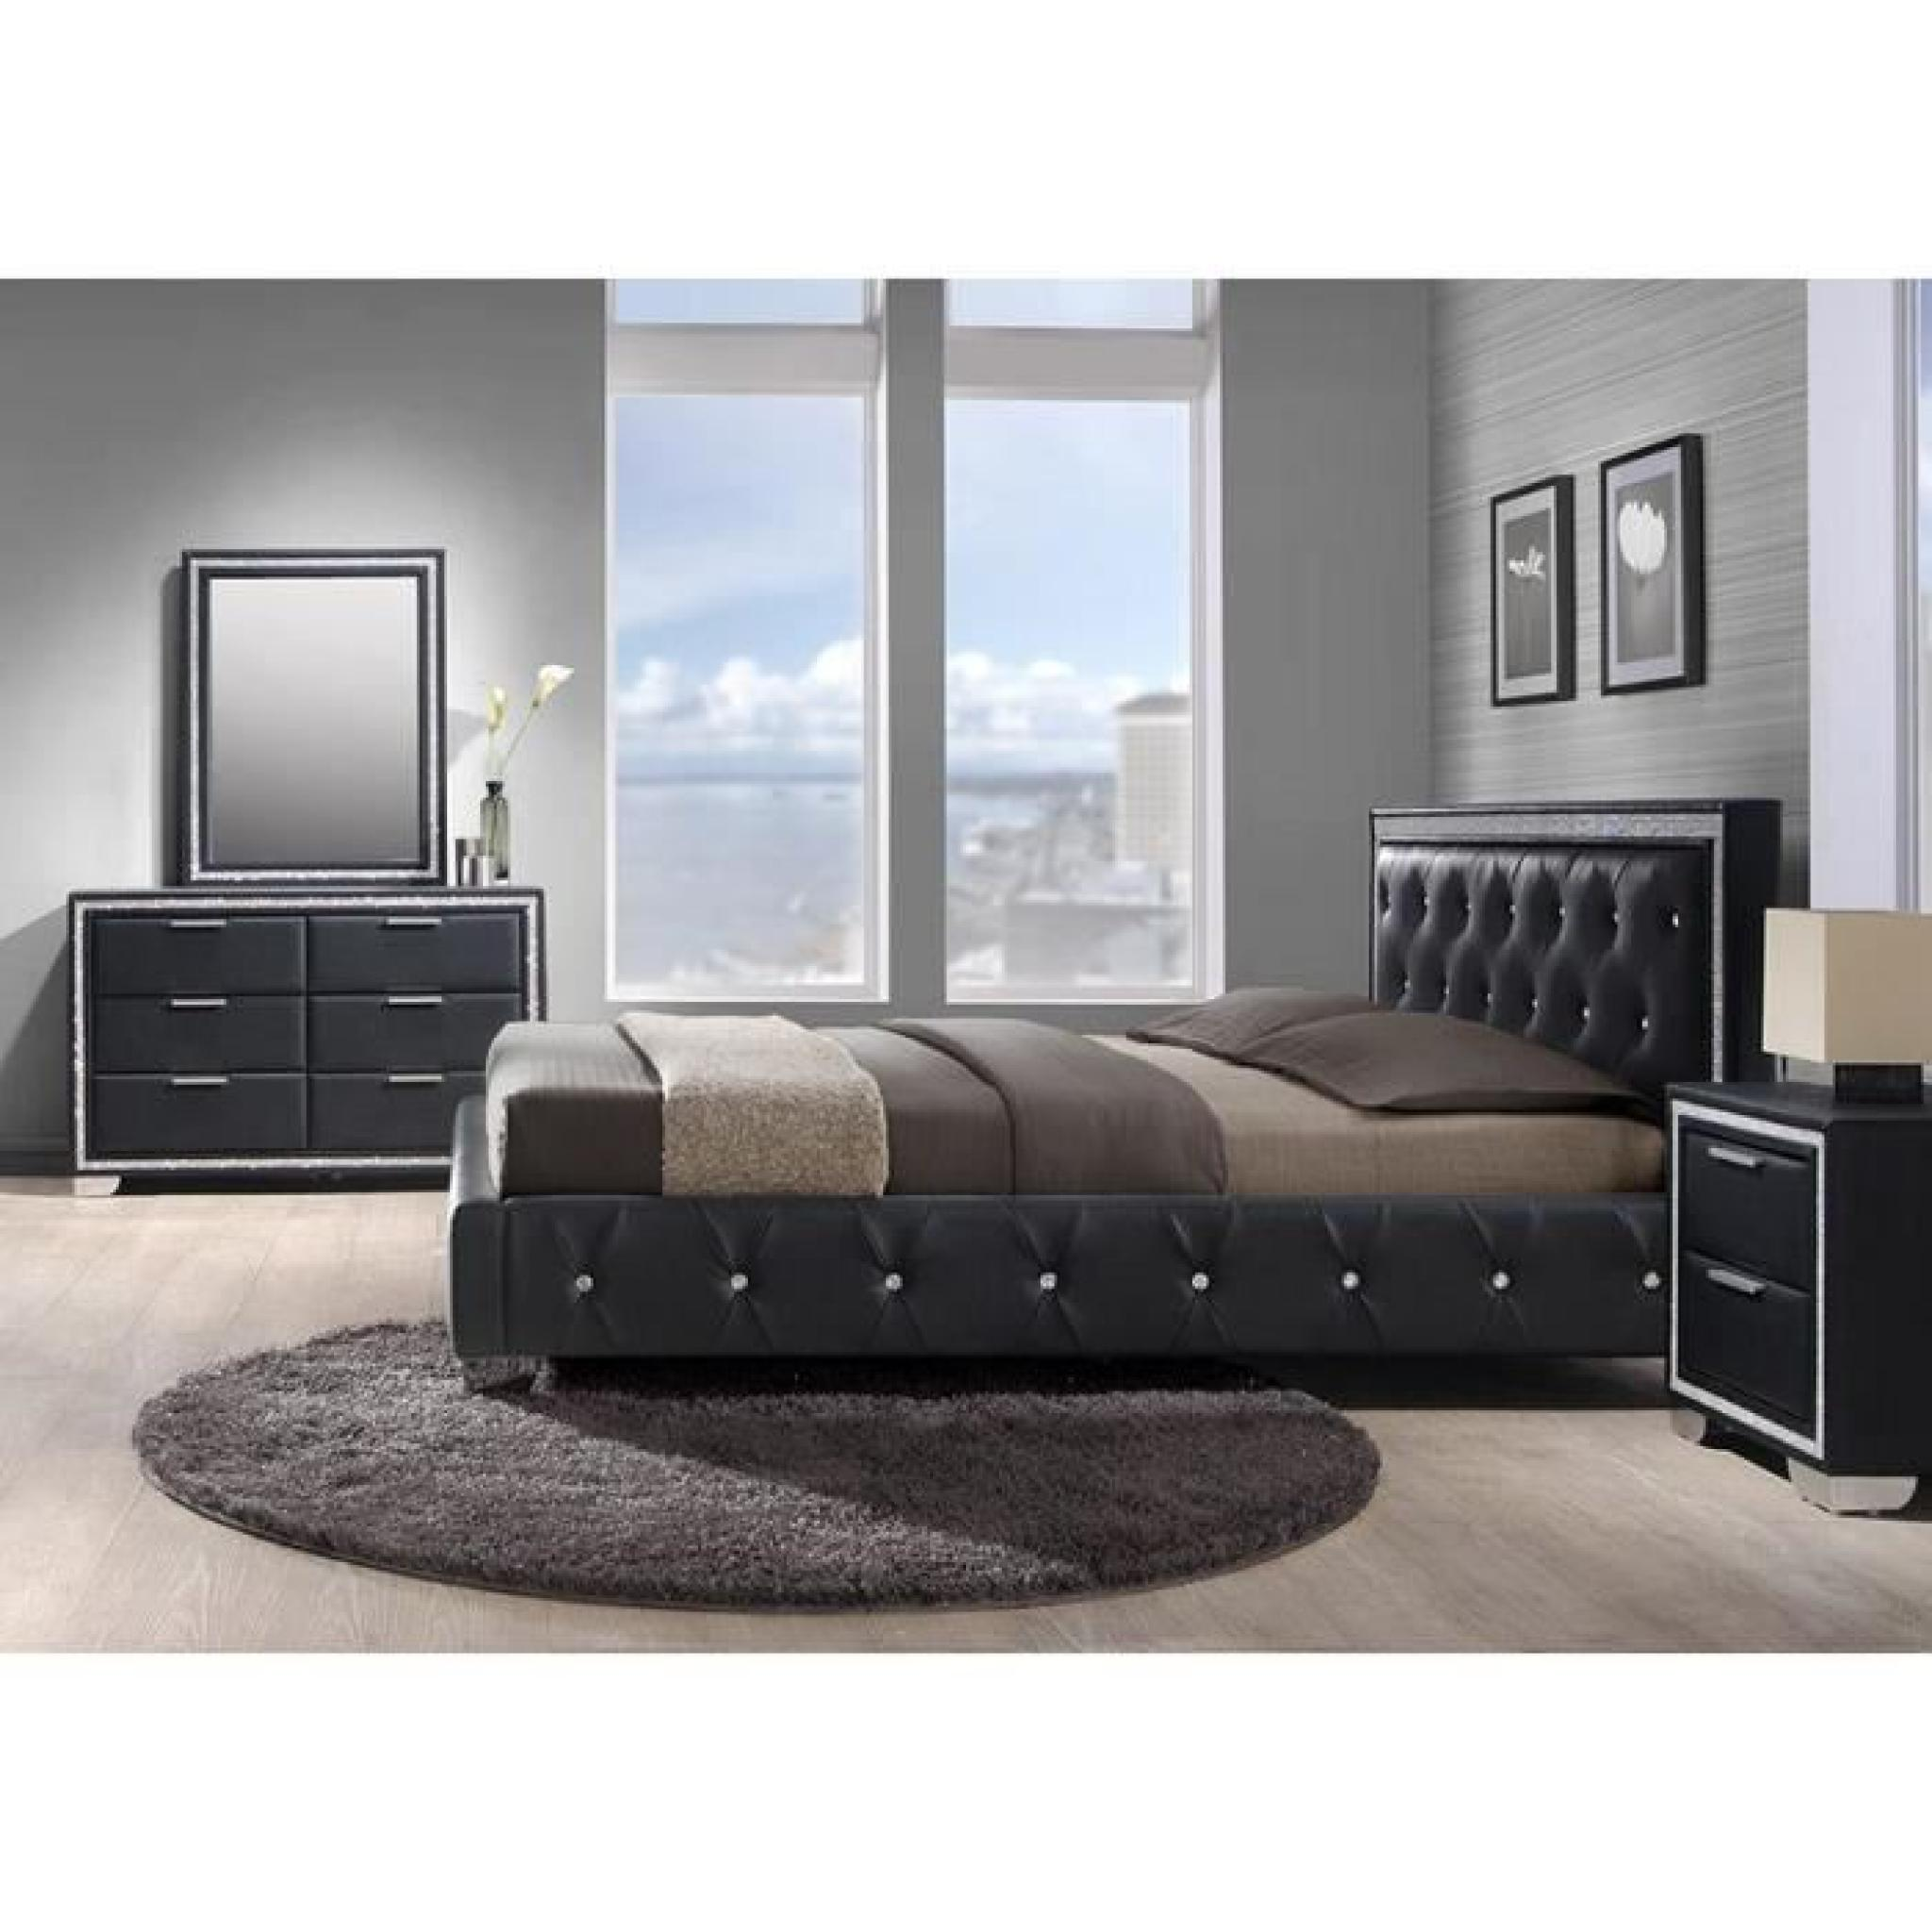 miroir moderne pas cher id es de d coration int rieure french decor. Black Bedroom Furniture Sets. Home Design Ideas